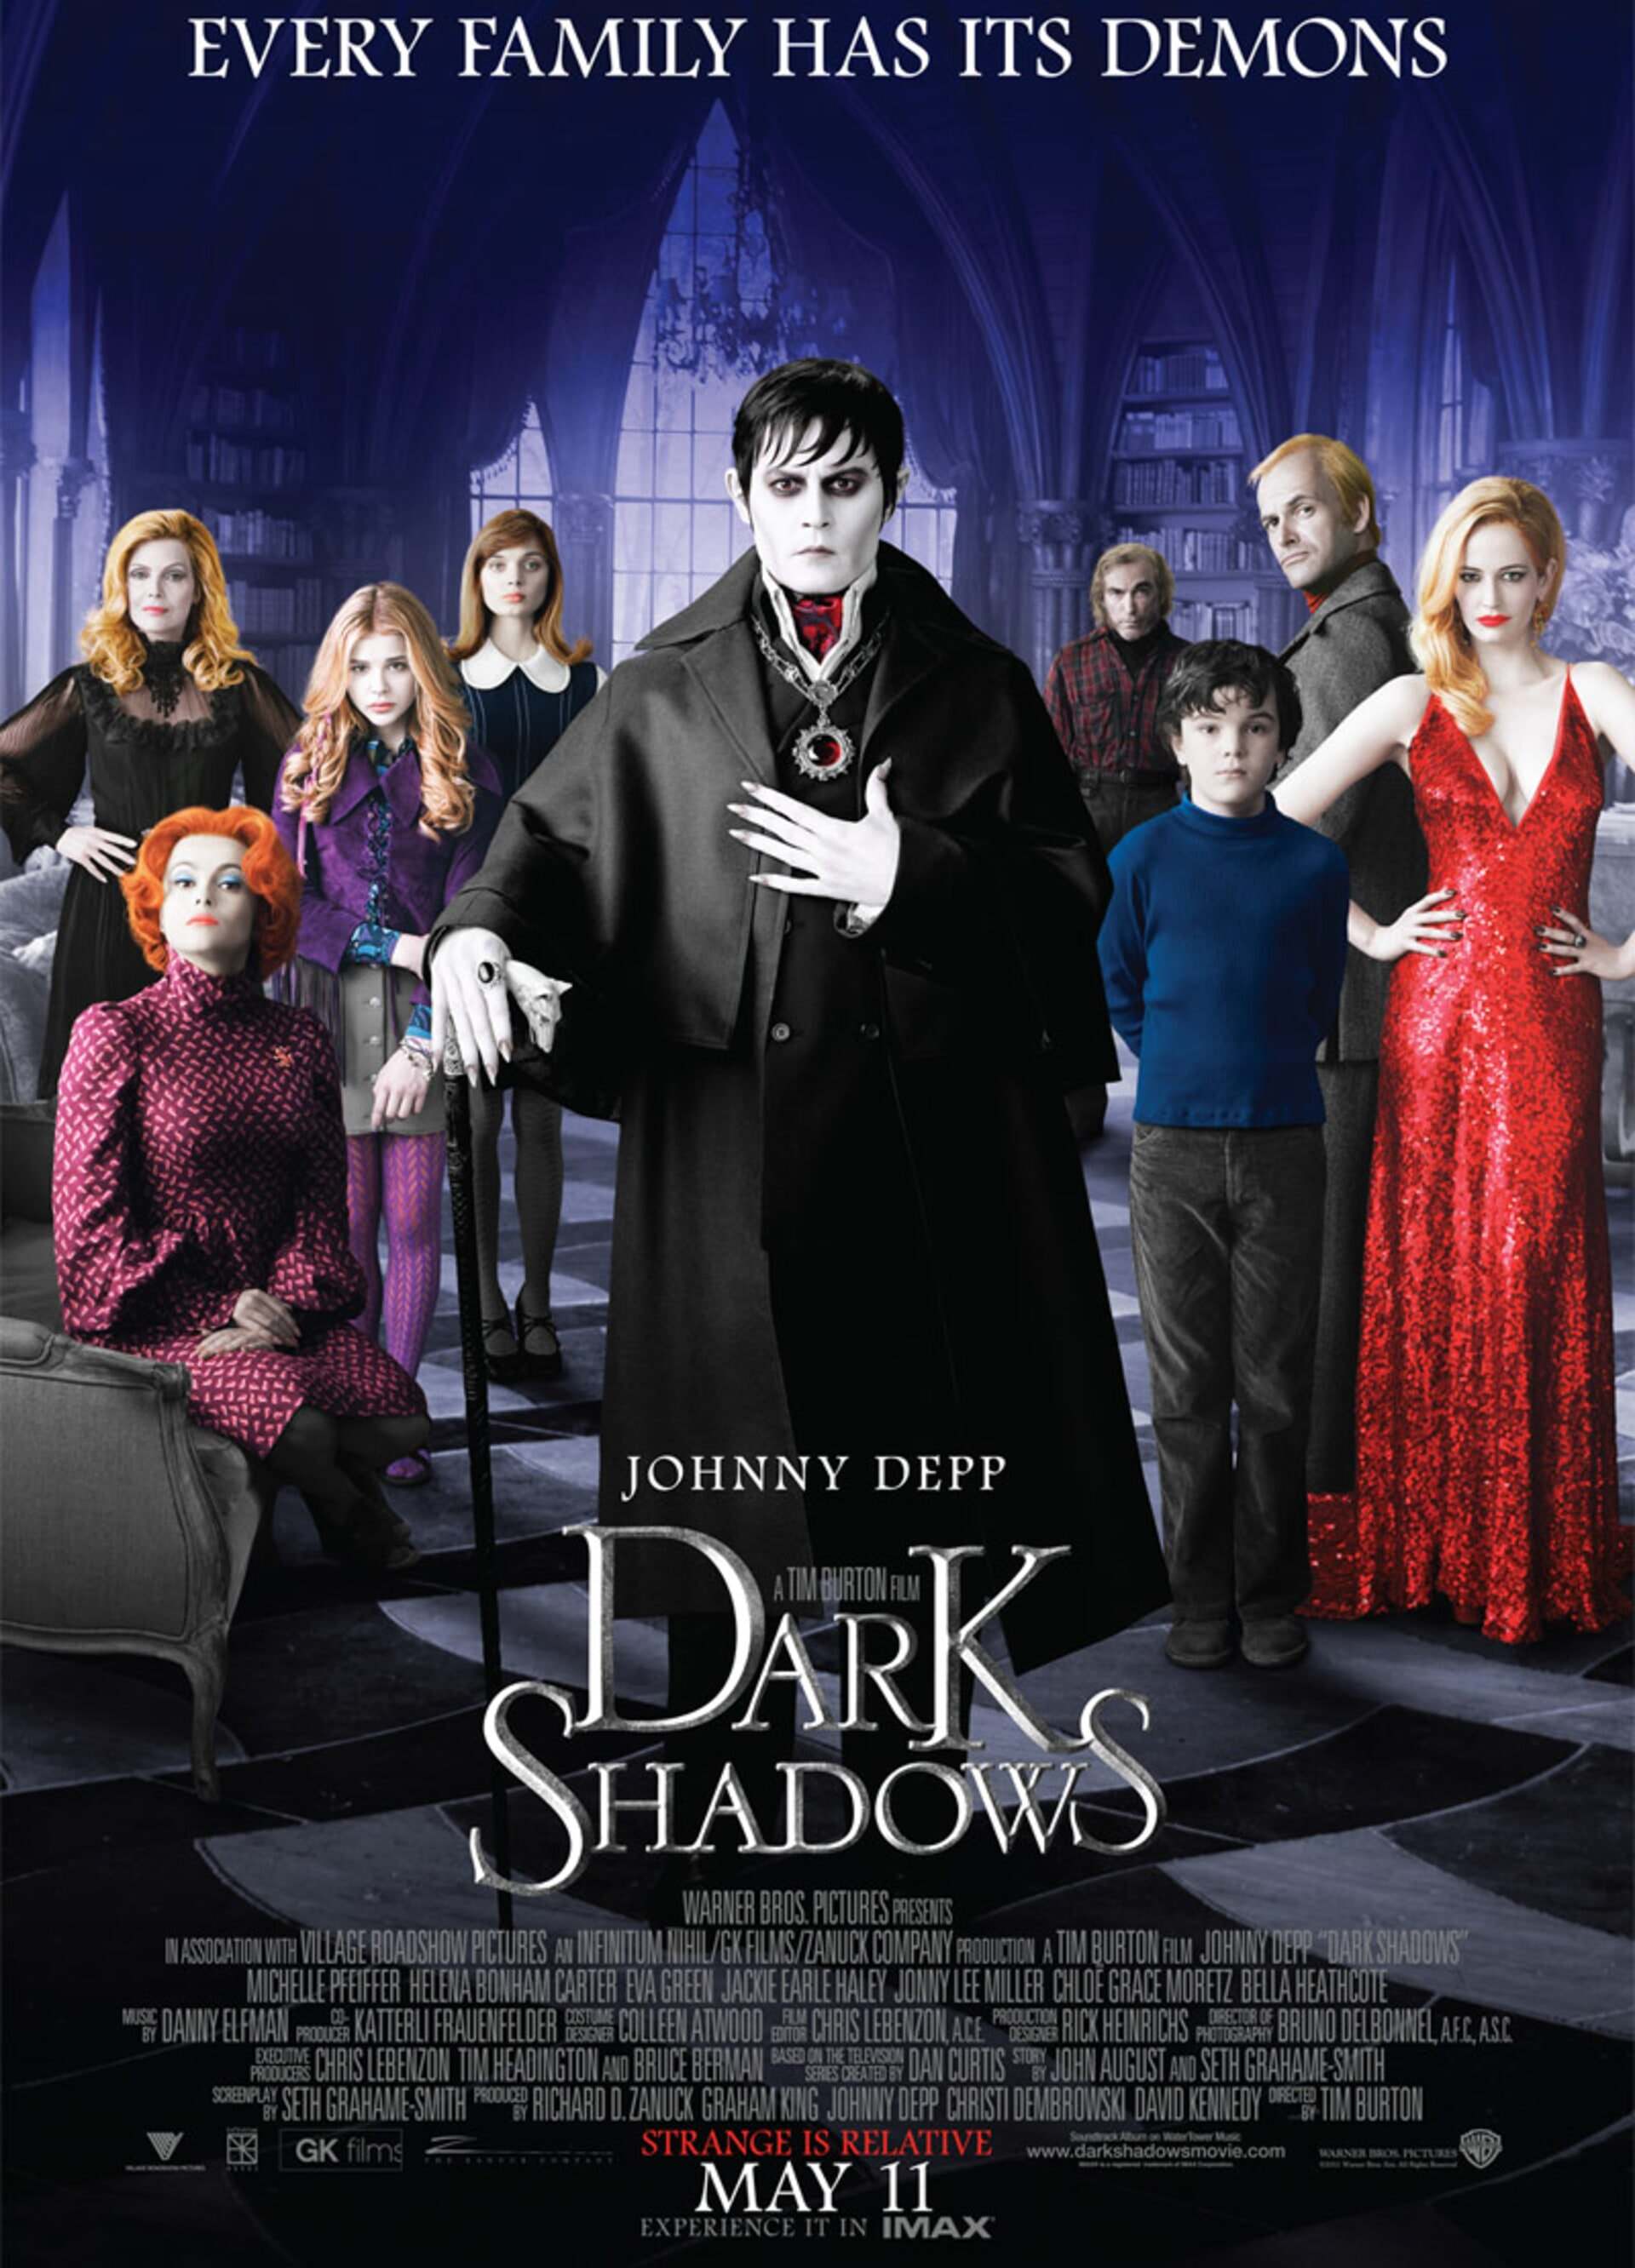 Dark Shadows - Poster 1